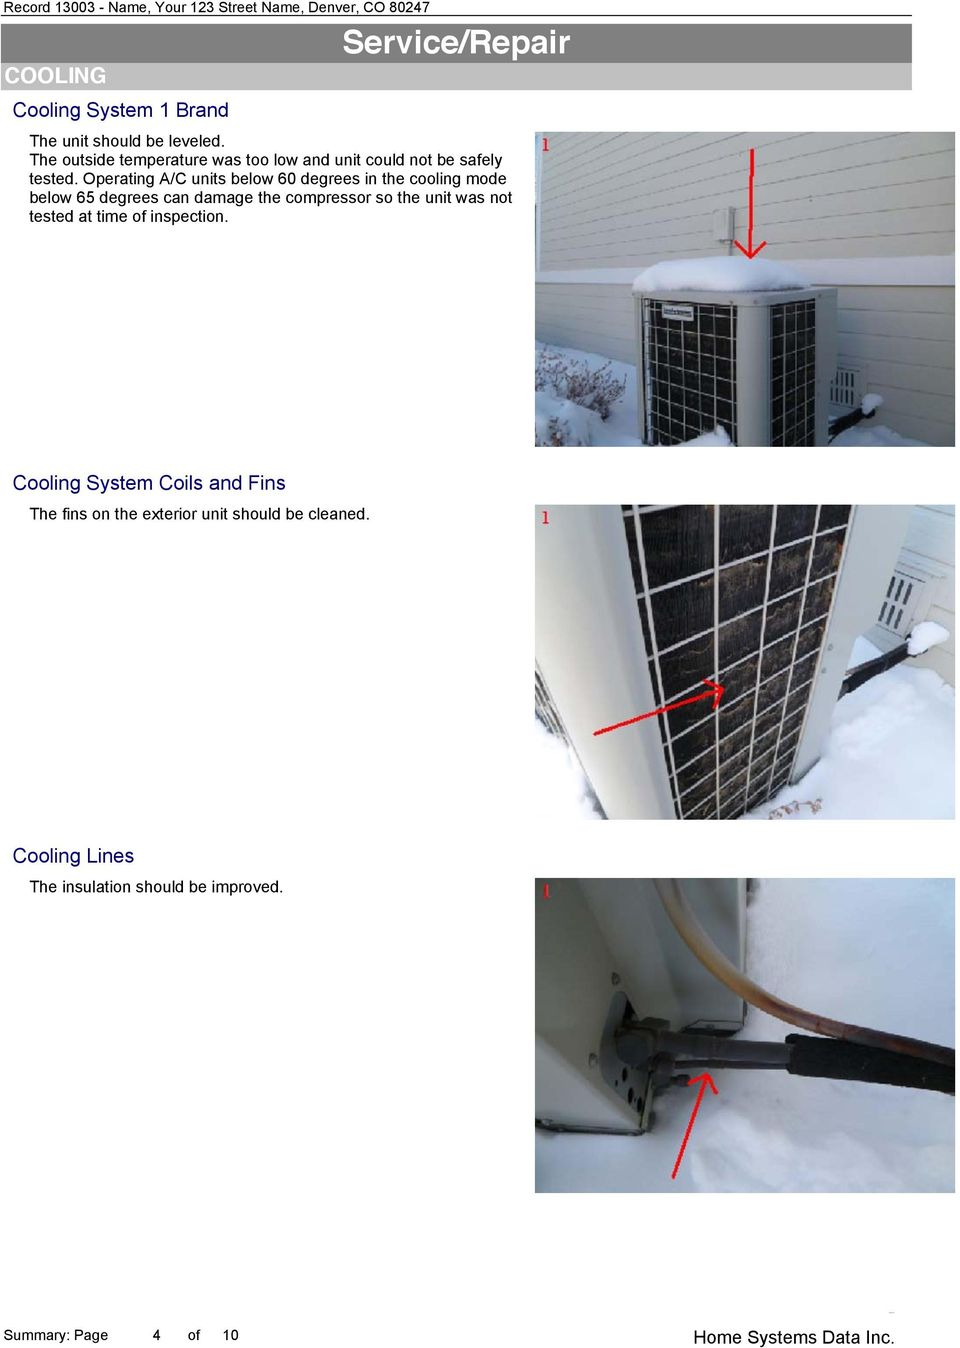 Operating A/C units below 60 degrees in the cooling mode below 65 degrees can damage the compressor so the unit was